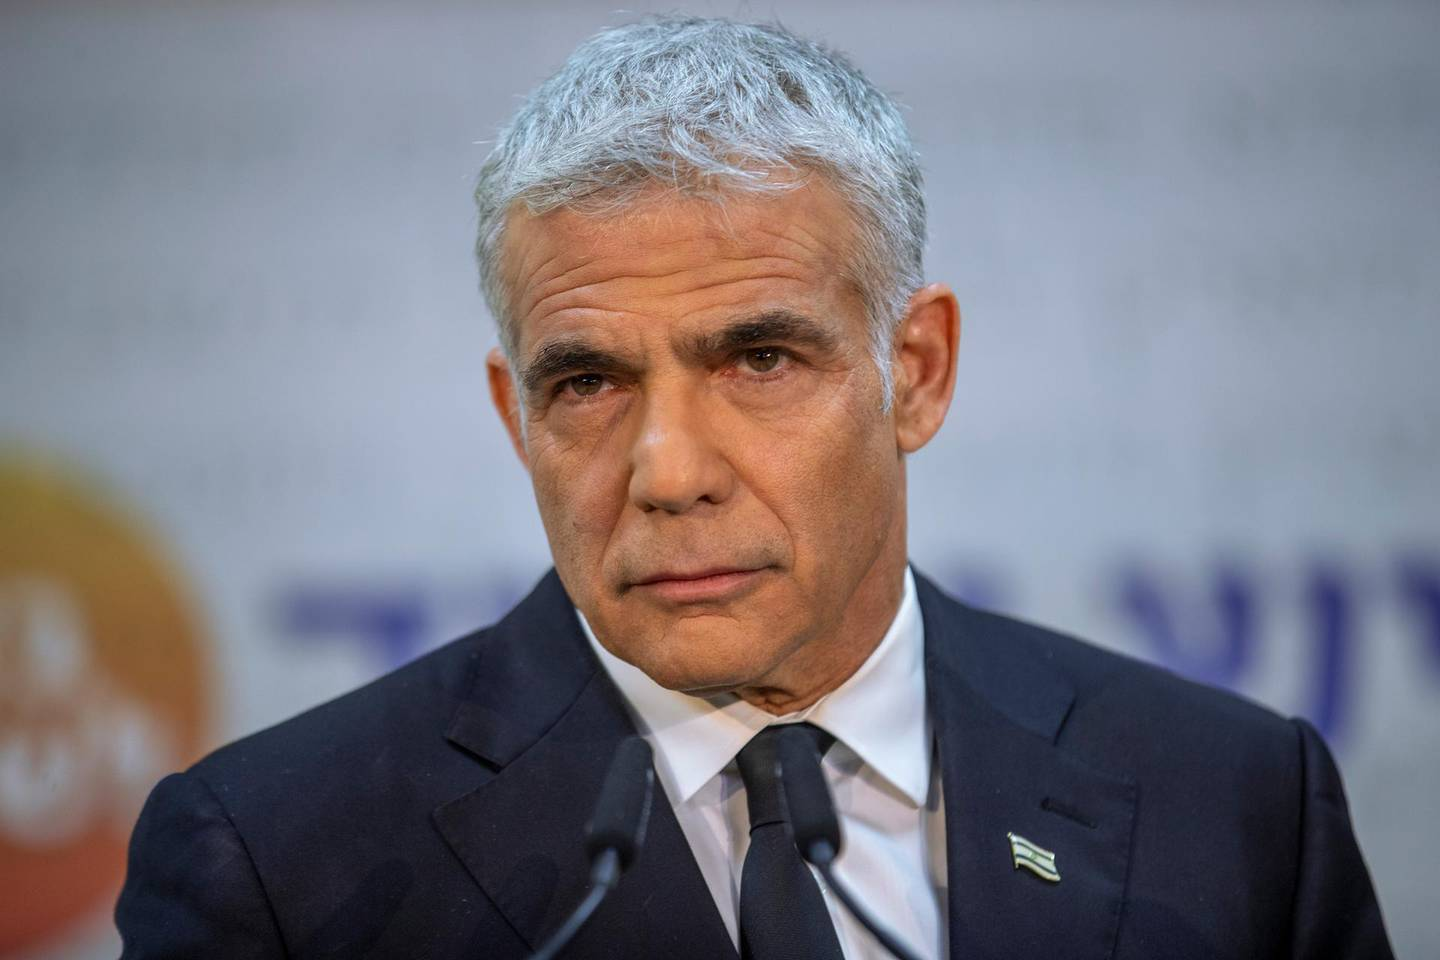 FILE - In this May 6, 2021, file photo, Israeli opposition leader Yair Lapid listens during a news conference in Tel Aviv, Israel. Prime Minister Benjamin Netanyahu's opponents on Wednesday, June 2, were racing to finalize a coalition government to end his 12-year rule — the longest by any Israeli premier — ahead of a midnight deadline. Centrist Lapid and ultranationalist Naftali Bennett have joined forces and agreed to rotate the premiership between them, with Bennett going first, but are still working to cobble together a ruling coalition that would include parties from across the political spectrum. (AP Photo/Oded Balilty, File)